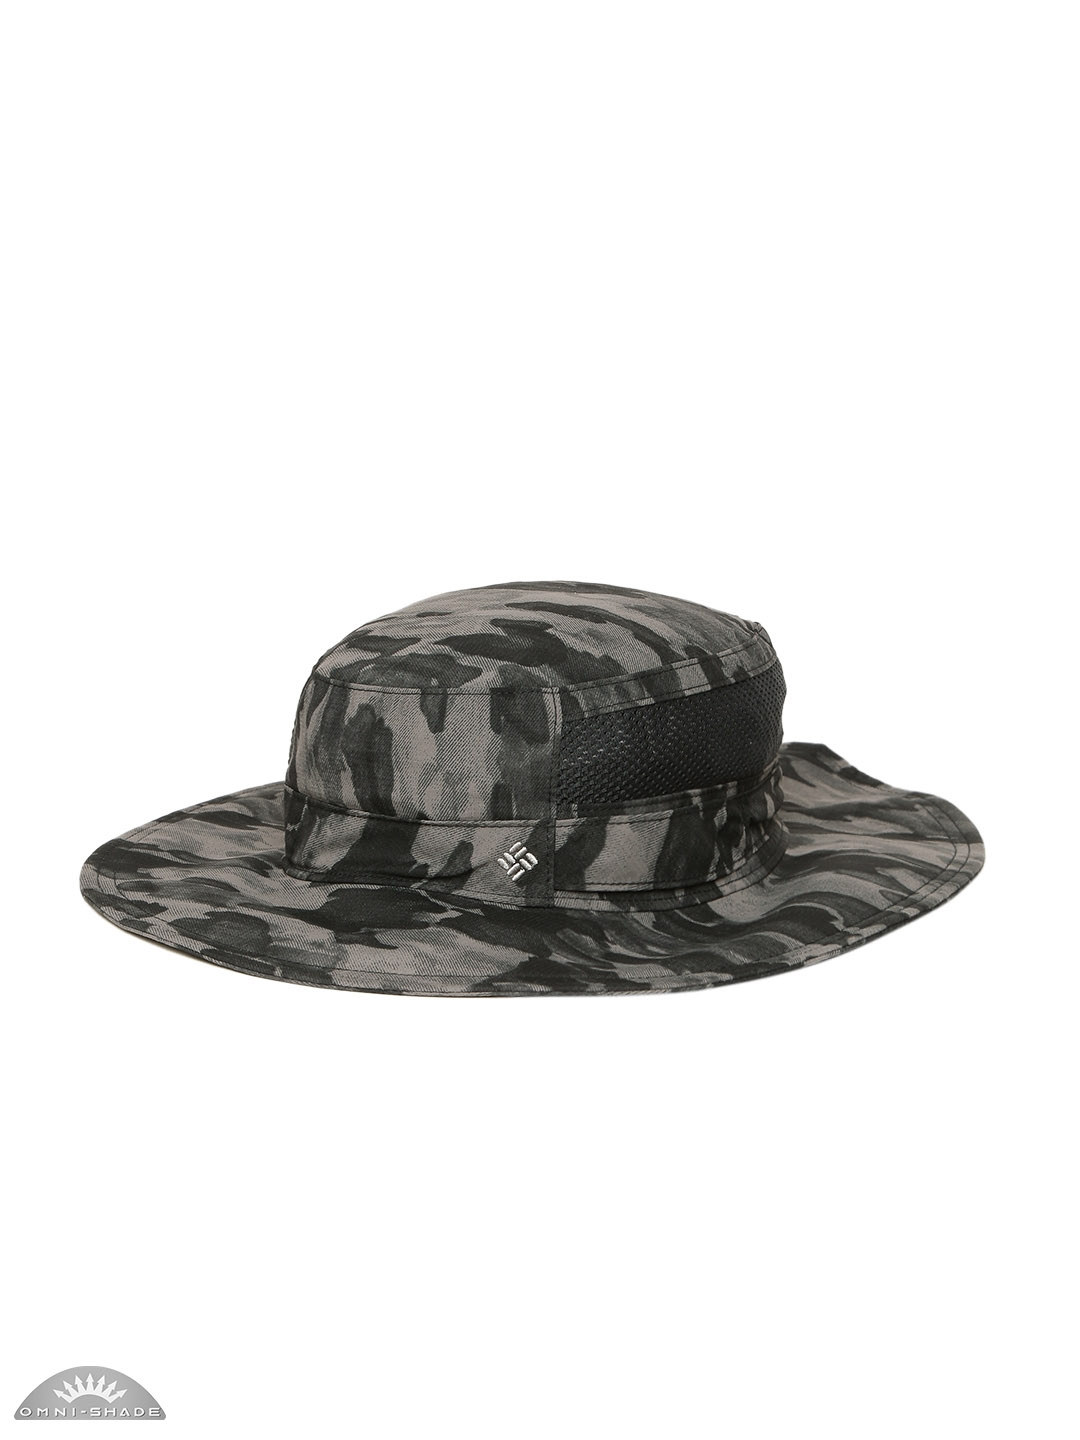 2da958cb949 Buy Columbia Unisex Grey   Black Bora Bora Print Booney Floppy Hat ...